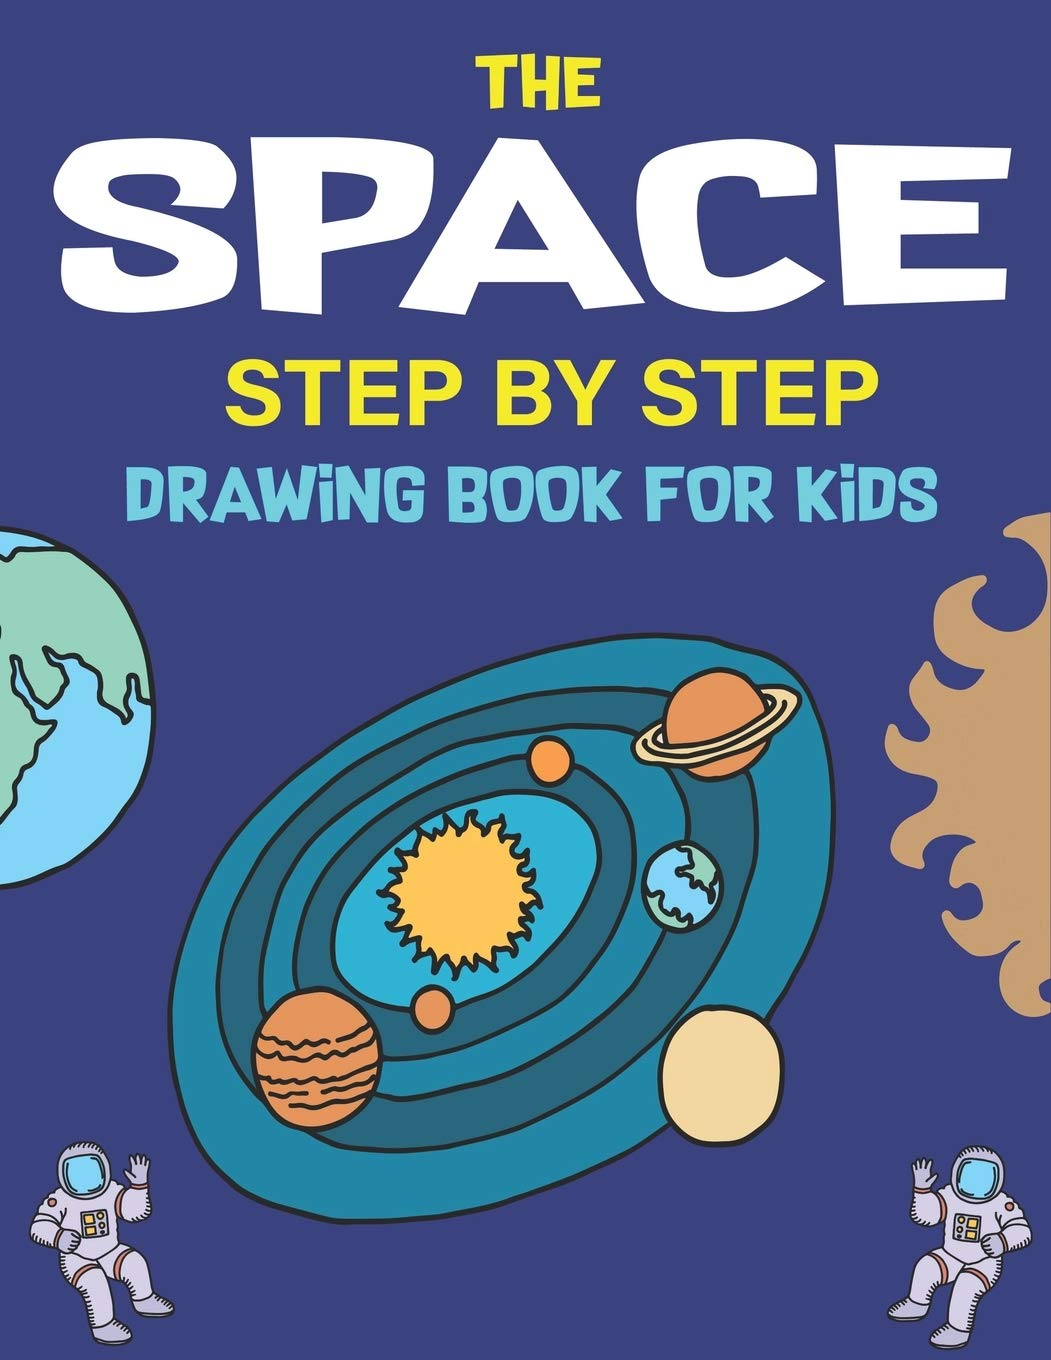 The Space Step By Step Drawing Book For Kids Explore Fun With Learn How To Draw Planets Stars Astronauts Space Ships And More Activity Amazing Gift For Science Tech